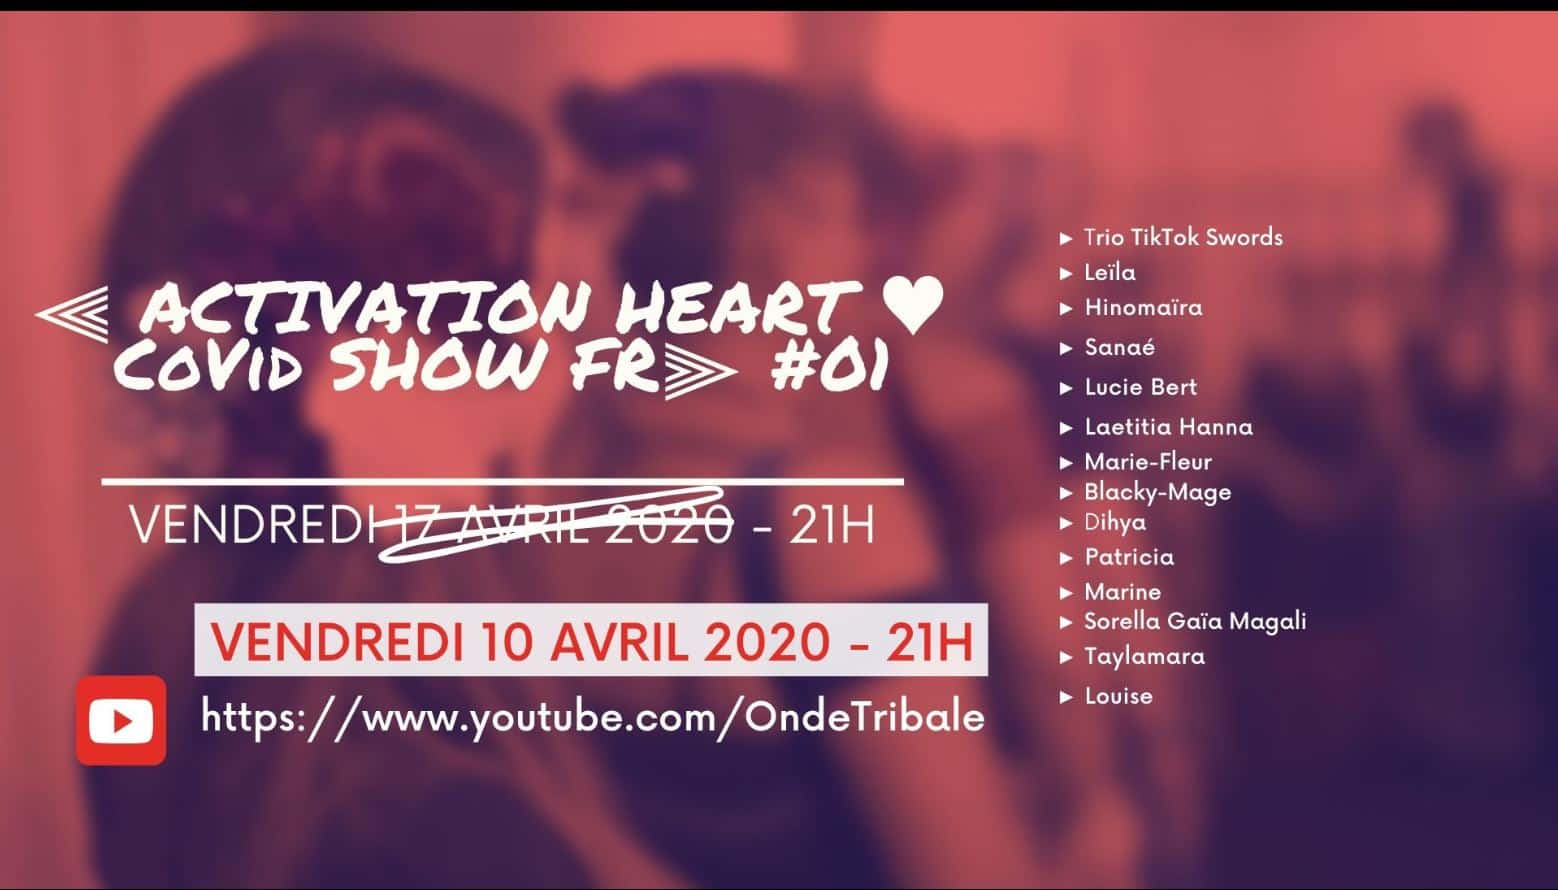 Visuel spectacle en ligne Activation Heart Covid Show Fr 01